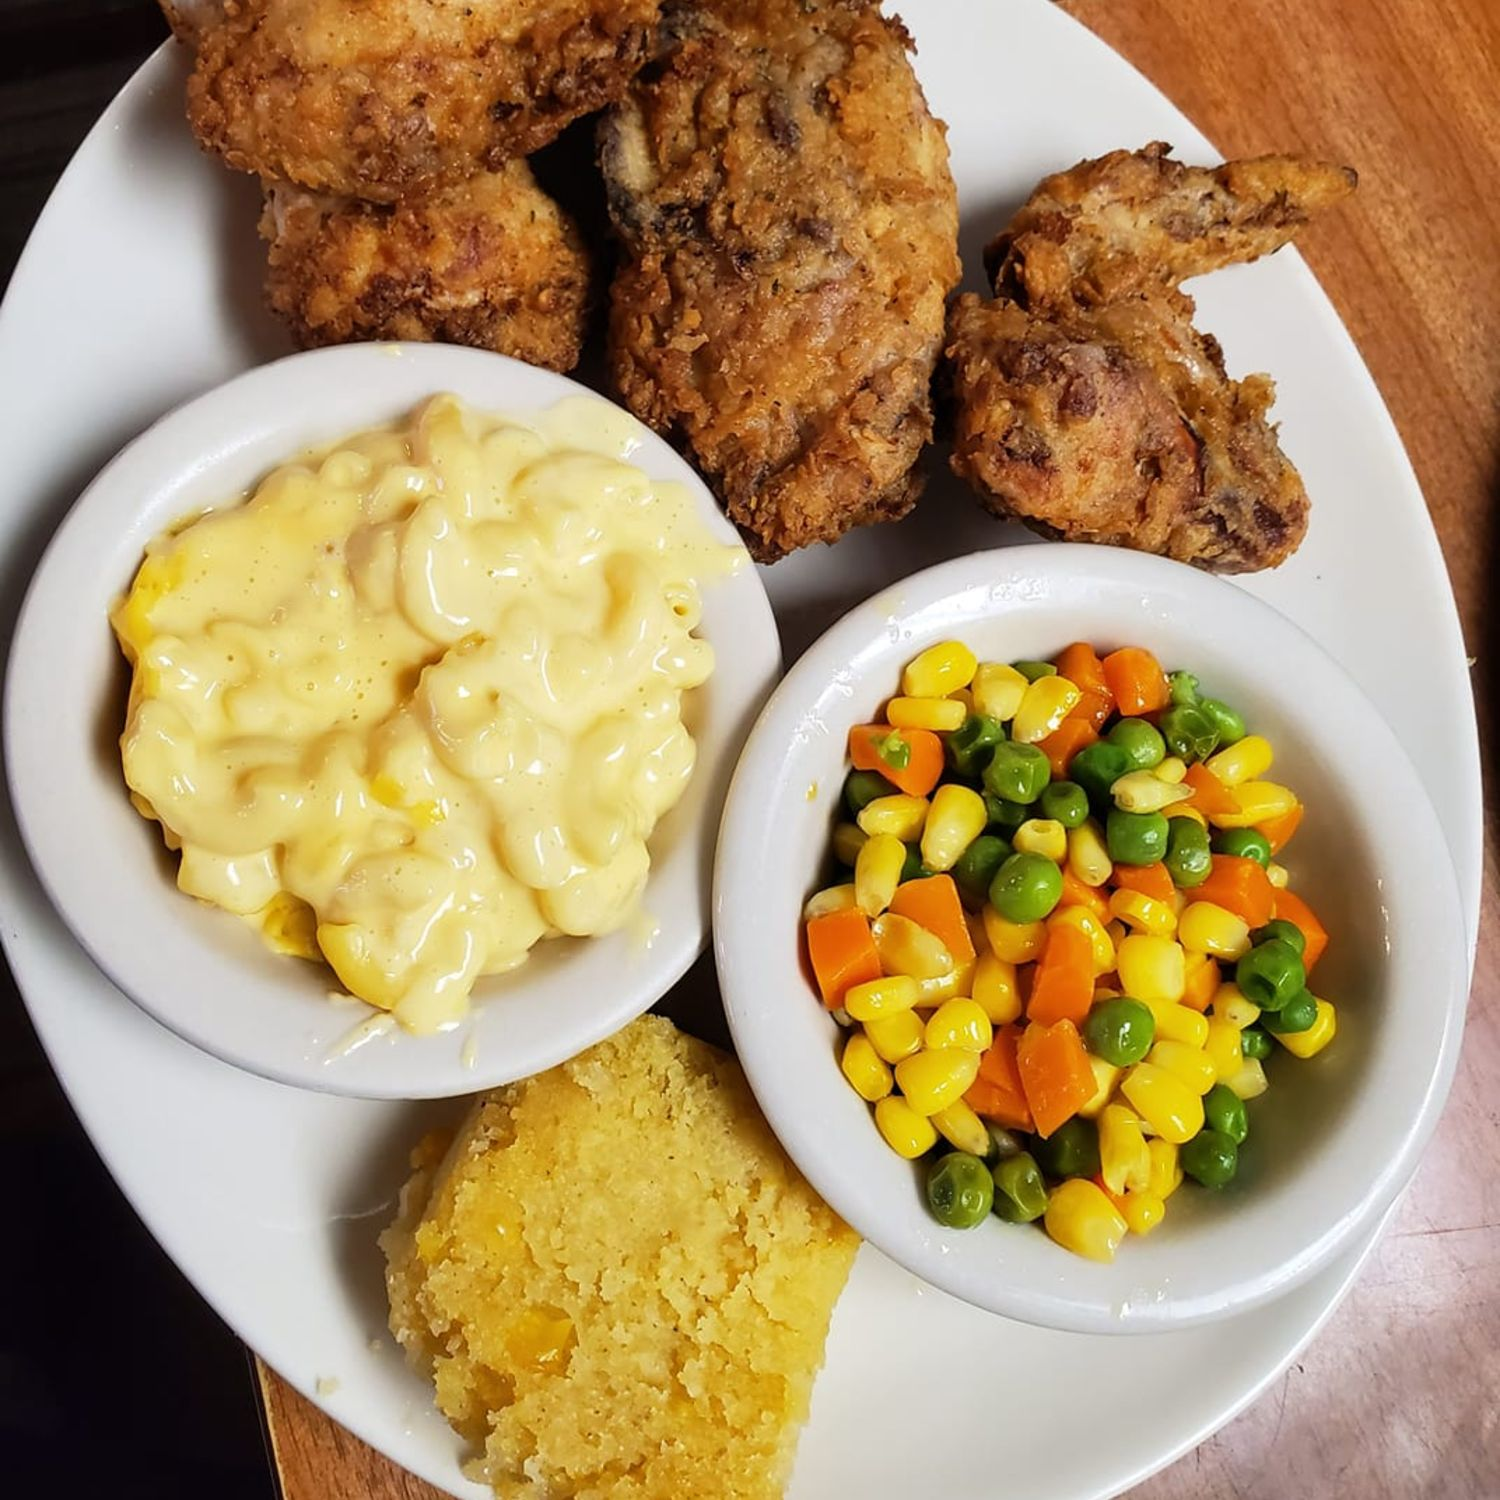 fried chicken, macaroni and cheese, mixed vegetables and a biscuit